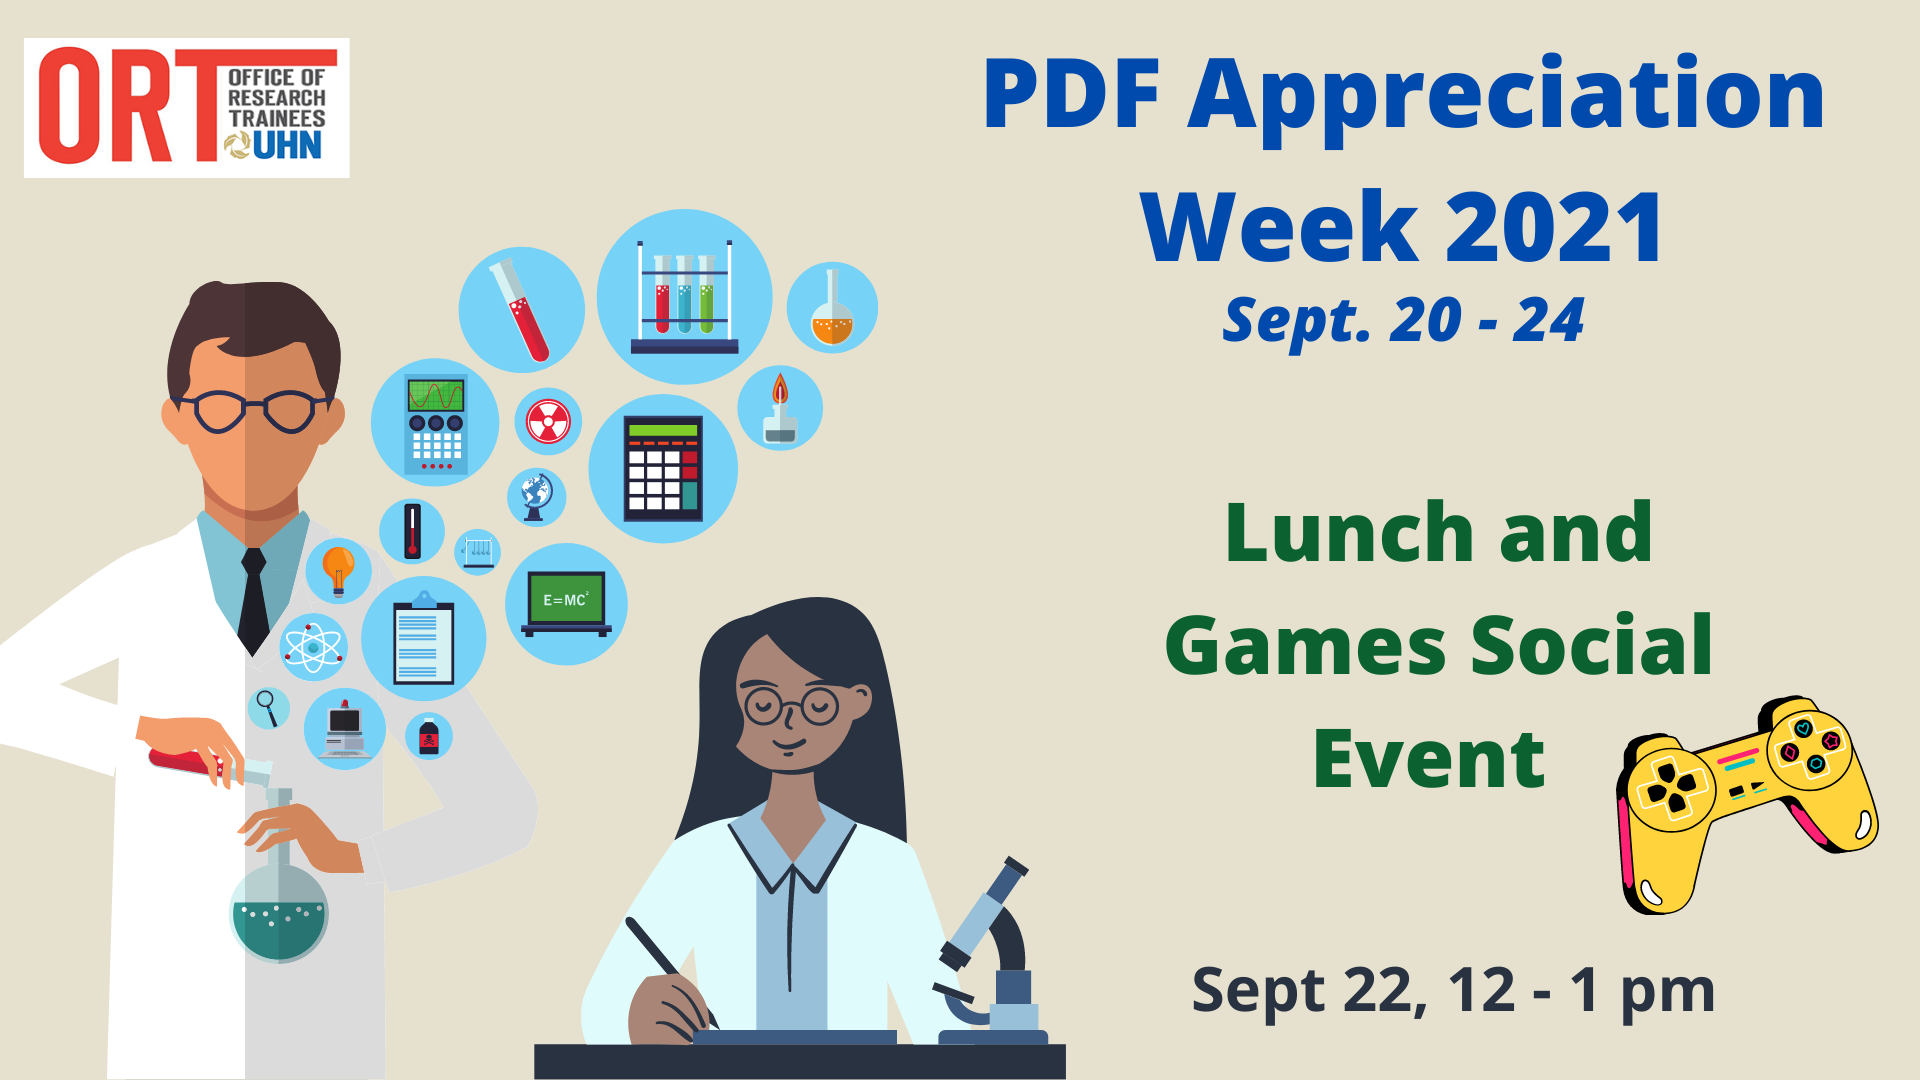 PDF Appreciation Week 2021 Event poster. Lunch and Games Social Event. Sept 23, 12 - 1 pm. An image of a video game console is seen on the right. Two scientists are pictured on the left